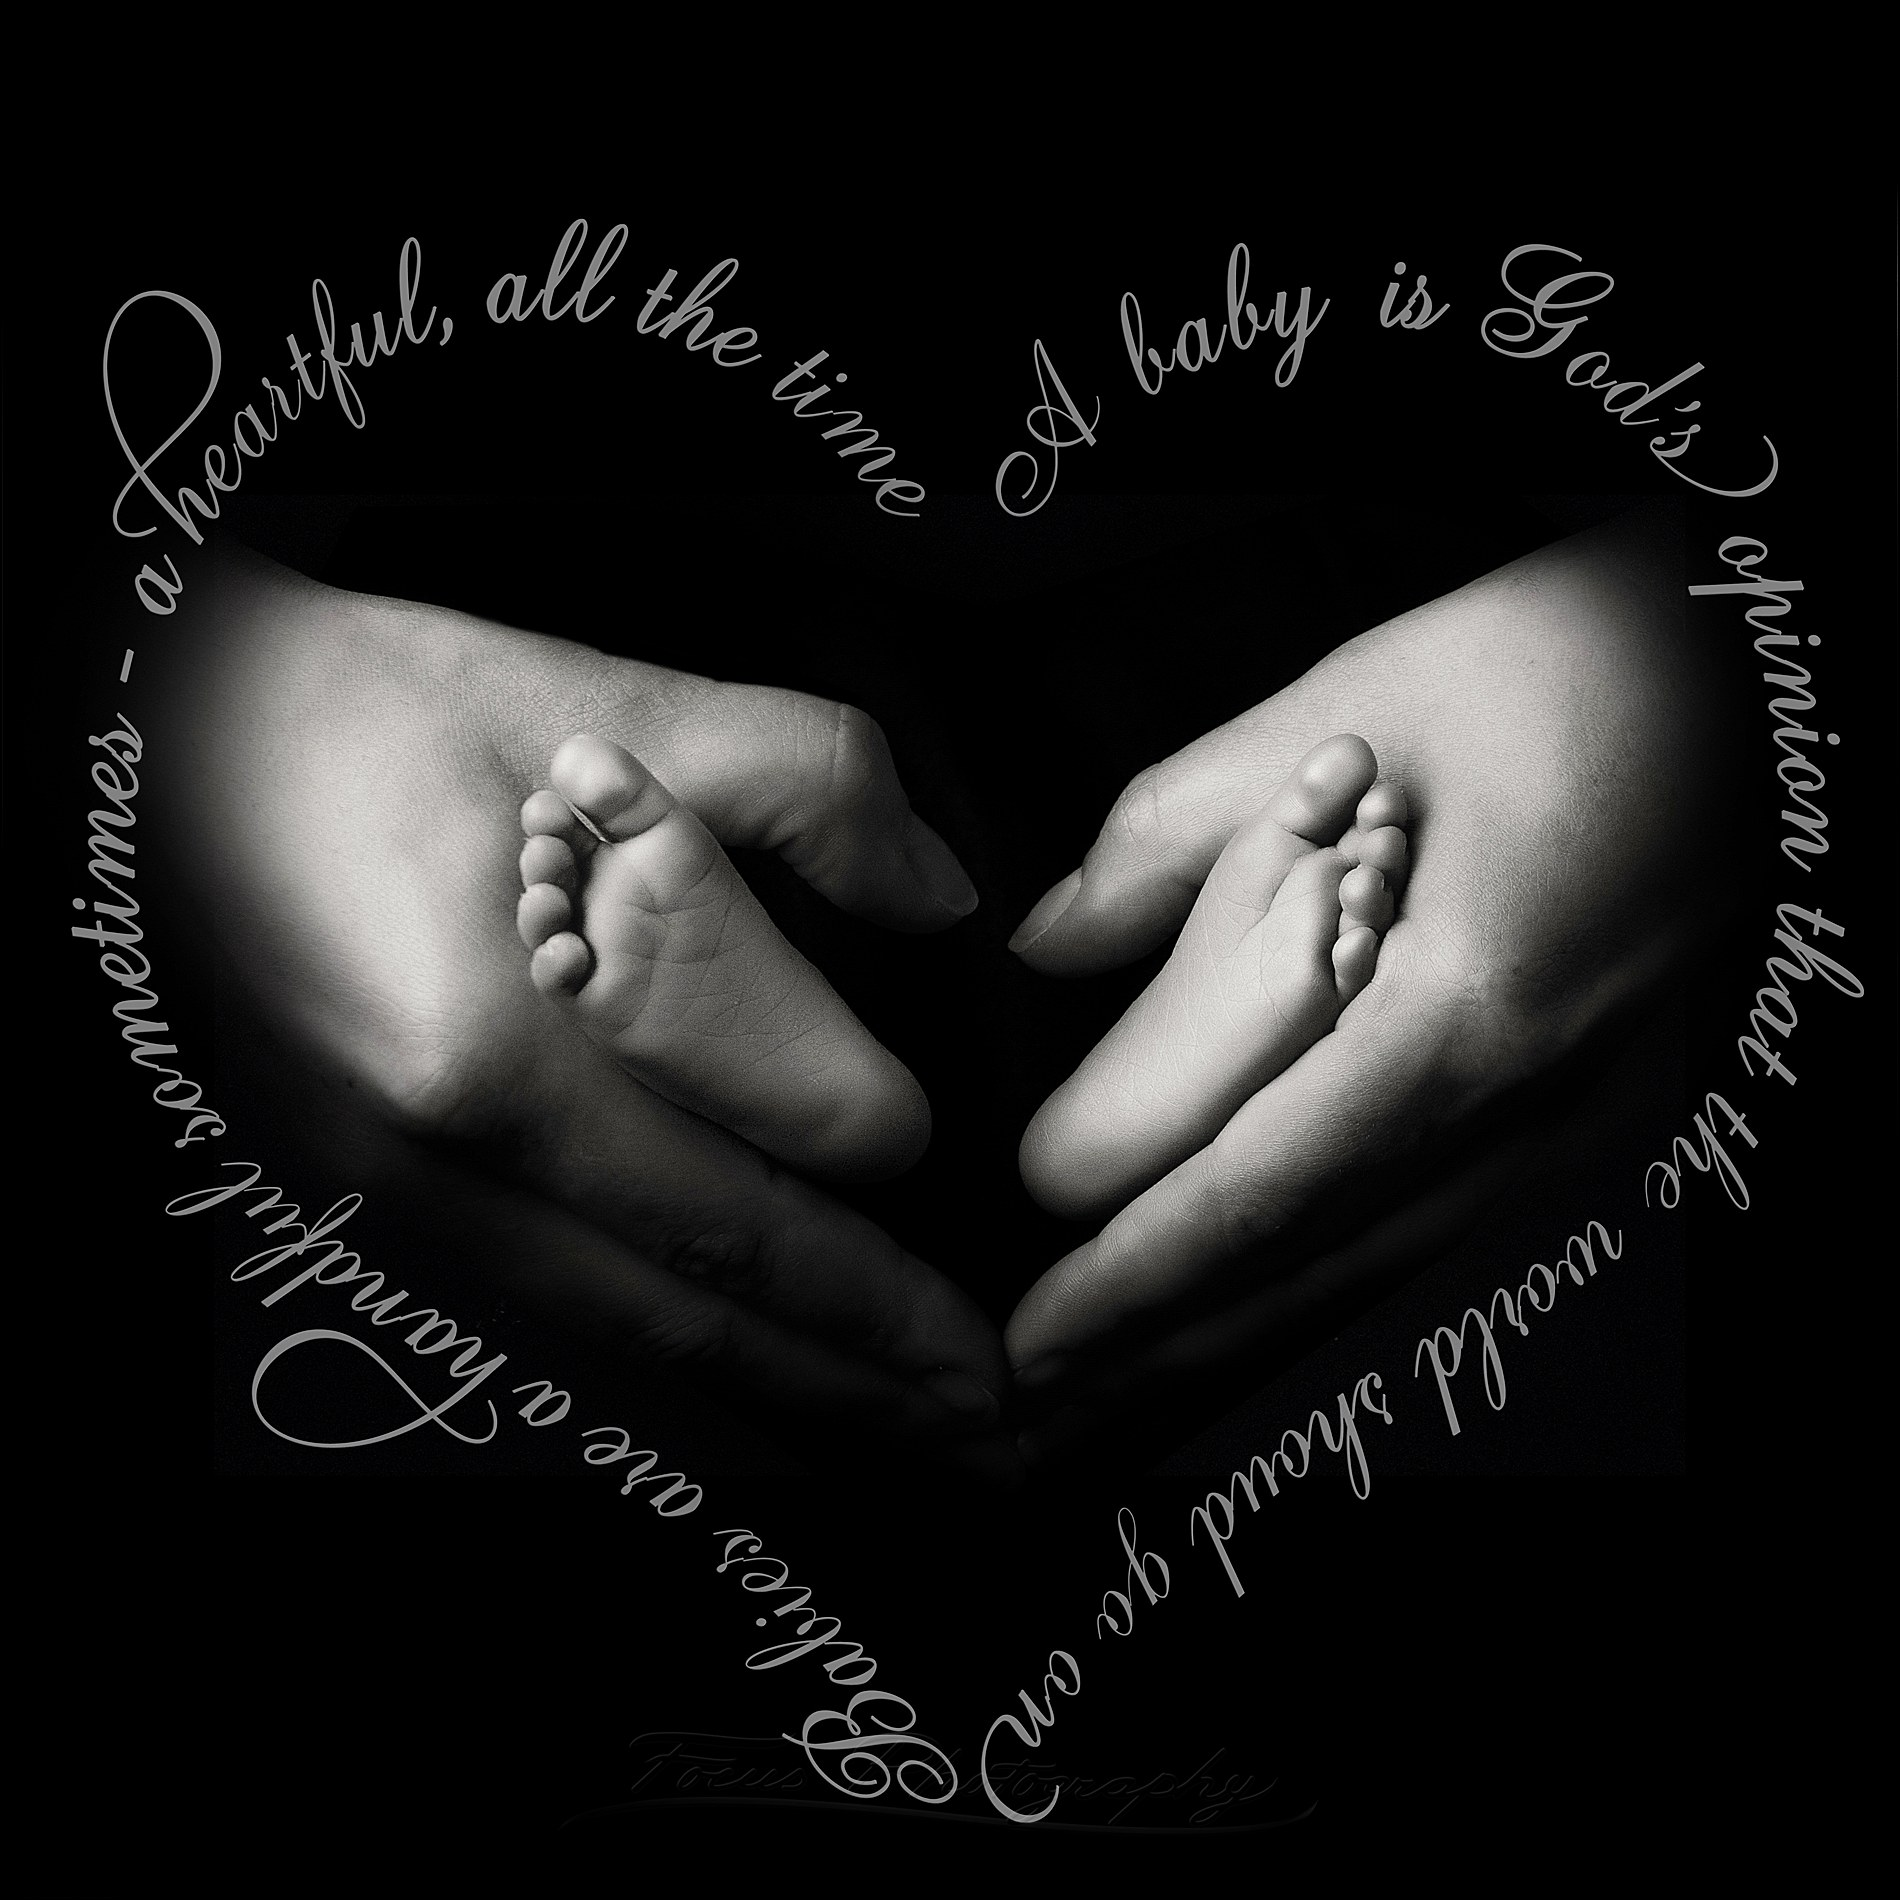 black and white newborn photography of hands holding little feet in this photo